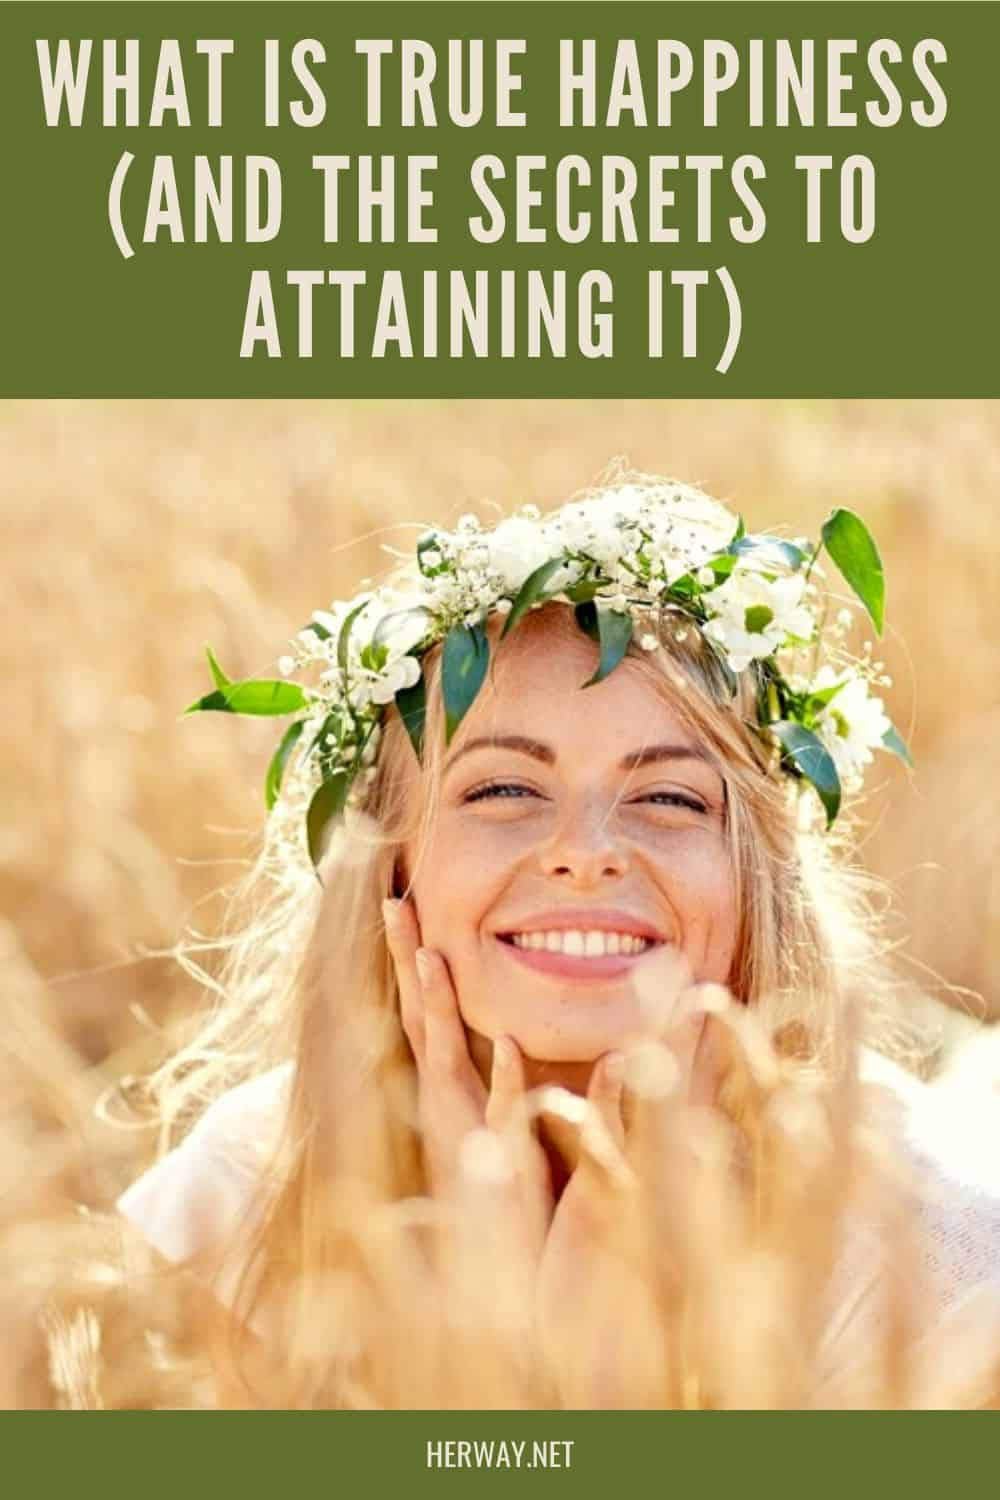 What Is True Happiness (And The Secrets To Attaining It)